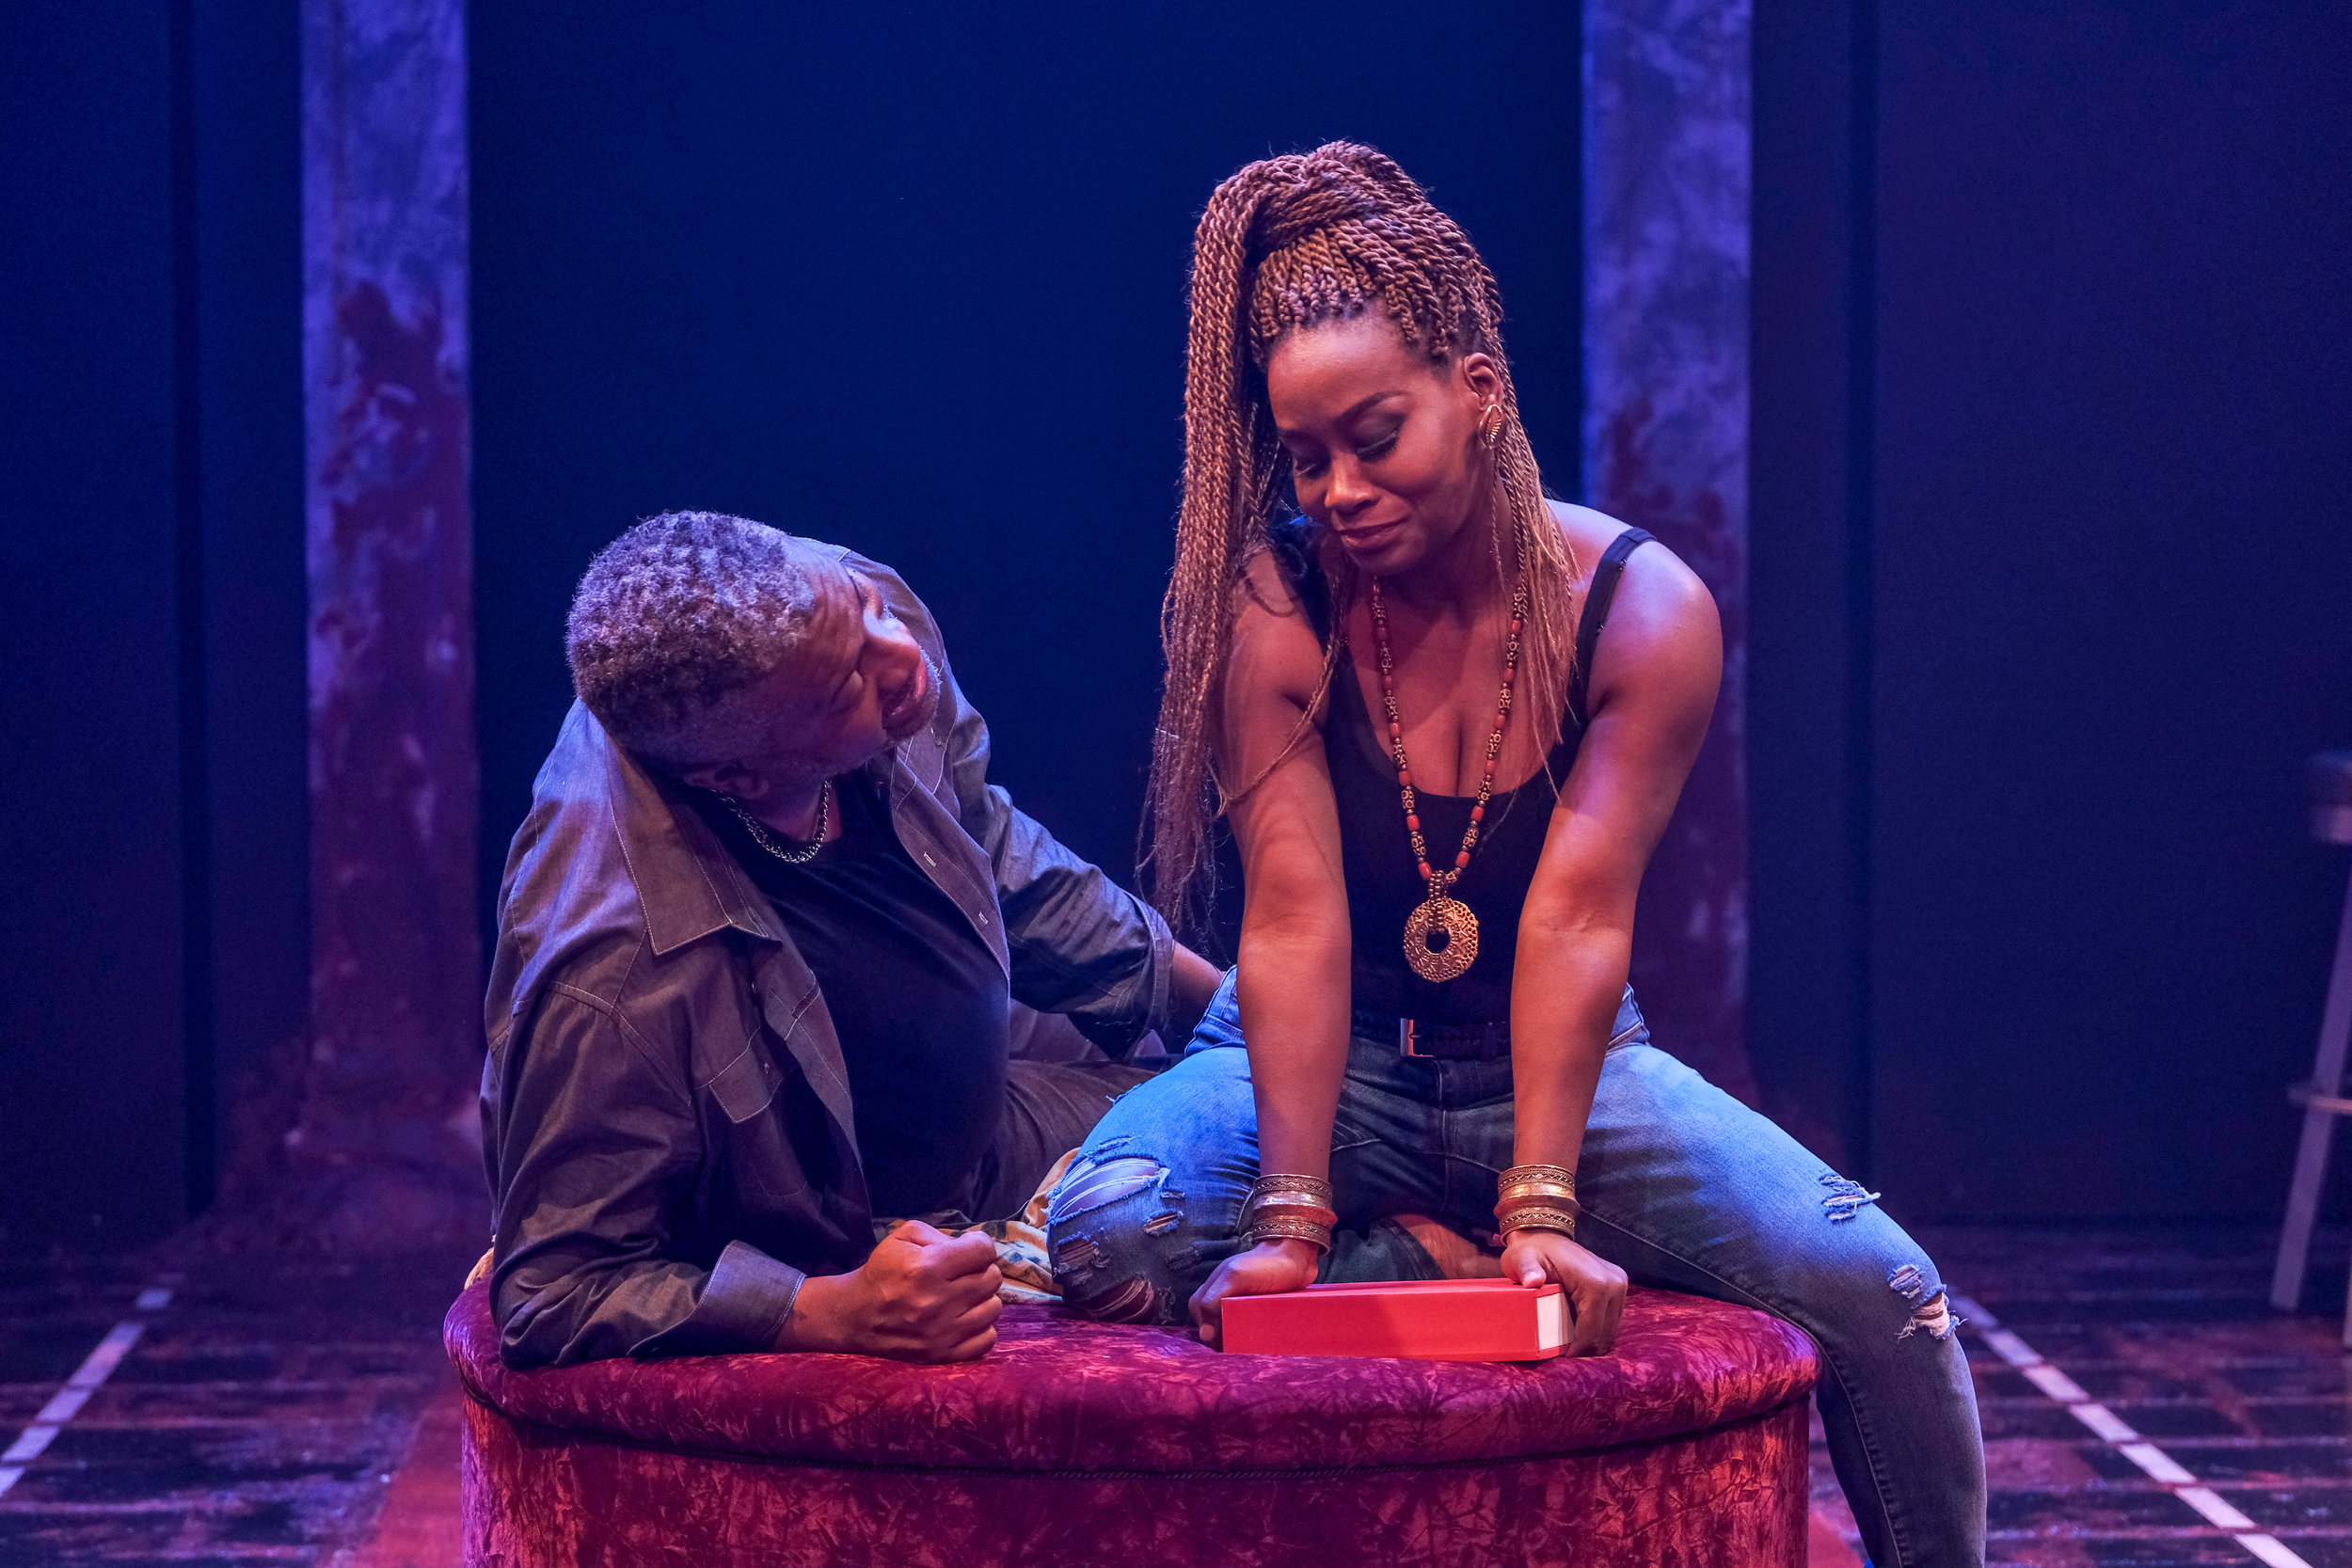 Roderick Sanford and CHANEL in The Ballad of Klook and Vinette at ZACH Theatre. Photo by Kirk Tuck